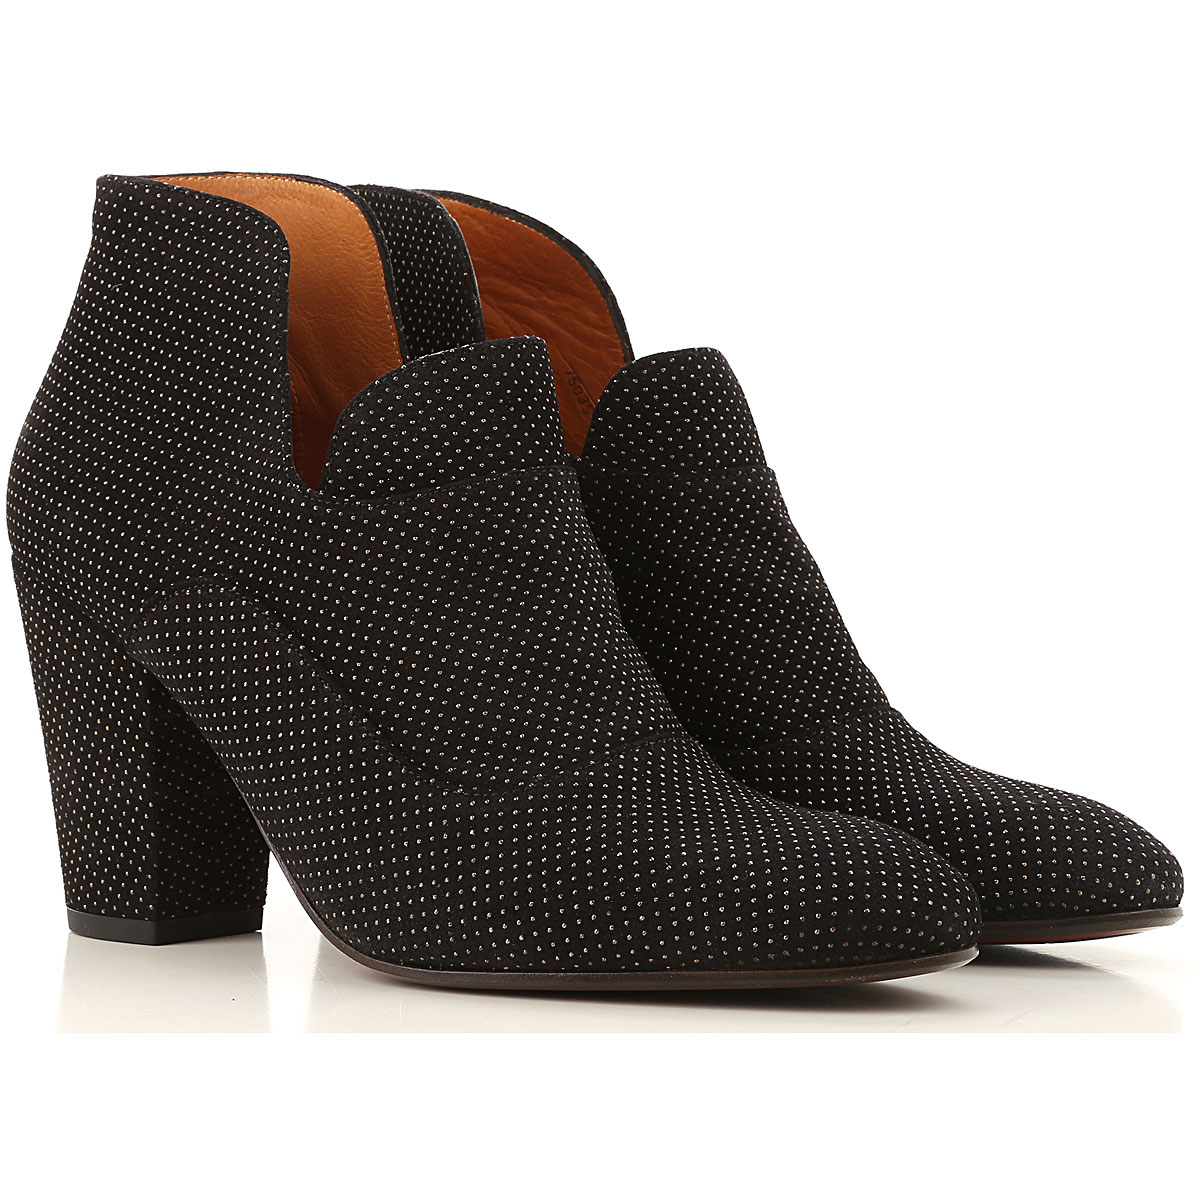 Chie Mihara Womens Shoes On Sale, Black, suede, 2019, 6 7 8 9.5